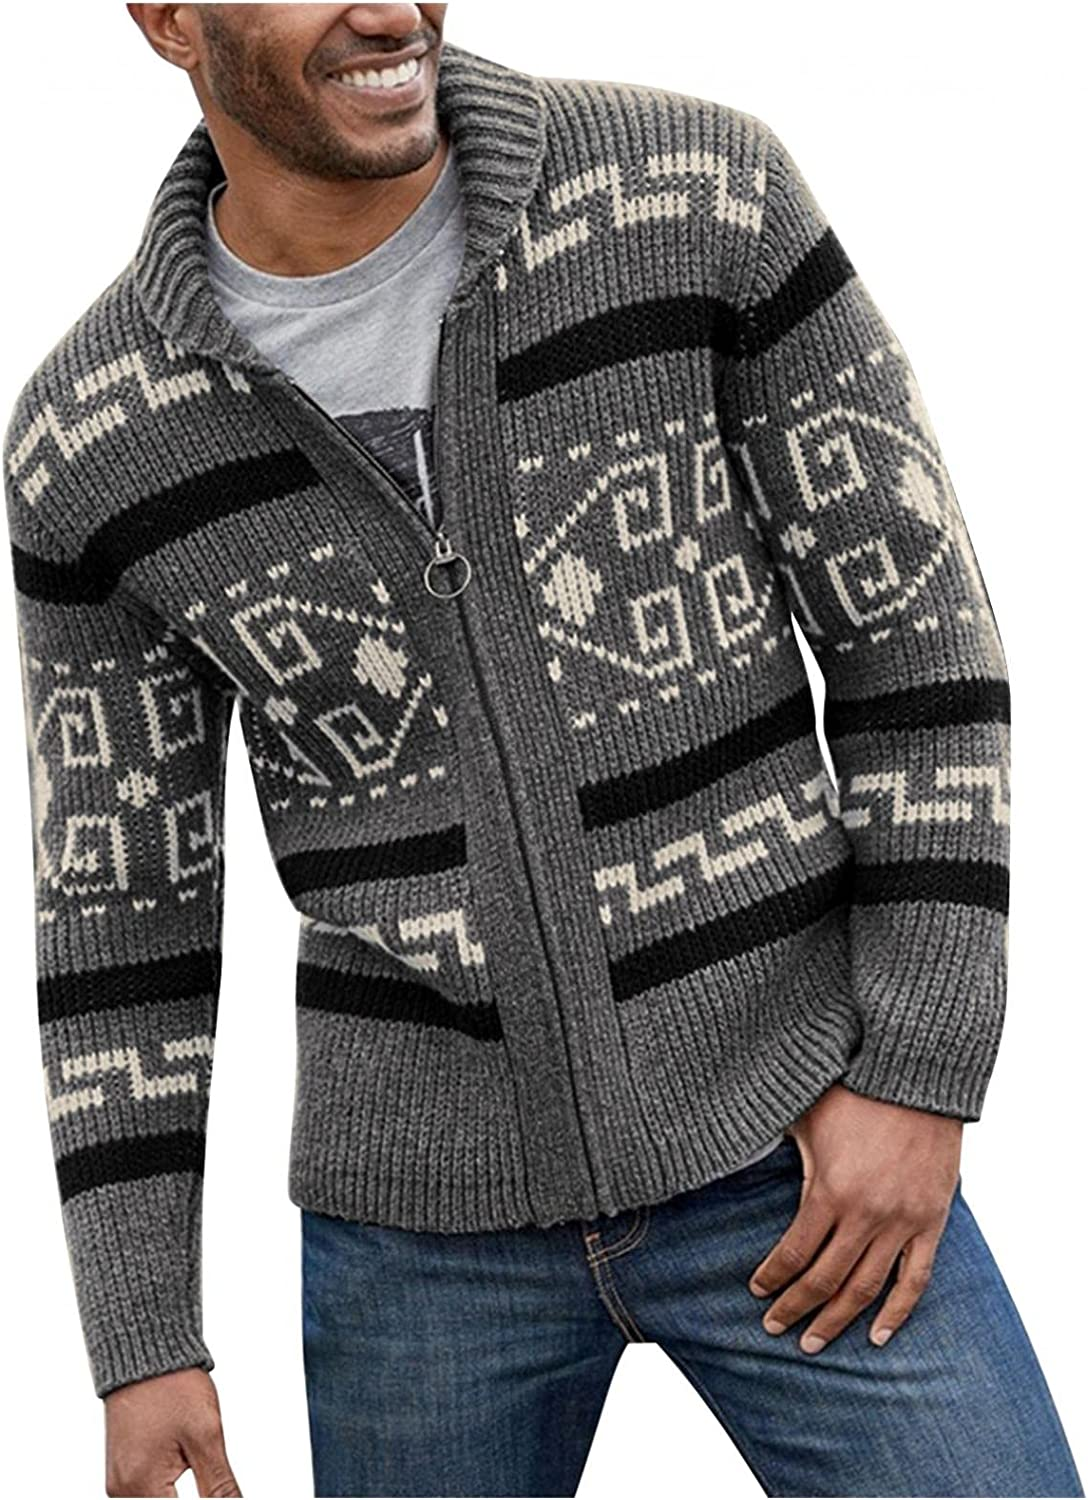 Stoota Men's Wool Blended Cardigan Sweater Outwear, Casual Slim Fit Lapel Jacquard Zipper Knitted Stretch Coat Sweaters